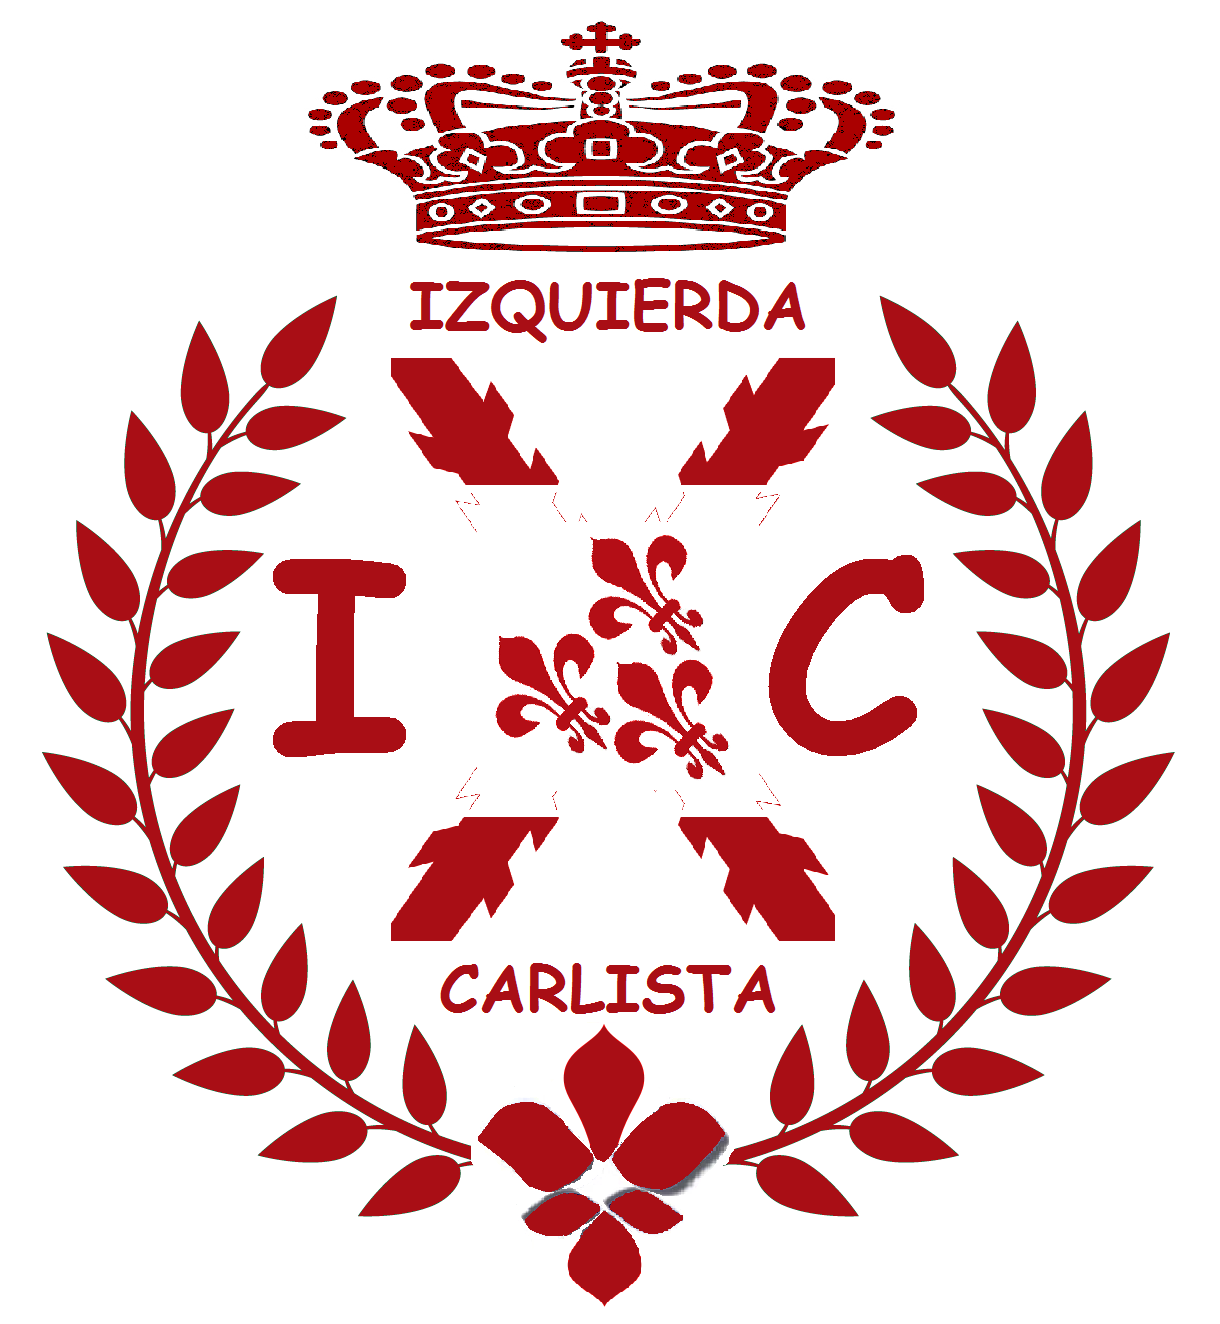 IZQUIERDA CARLISTA